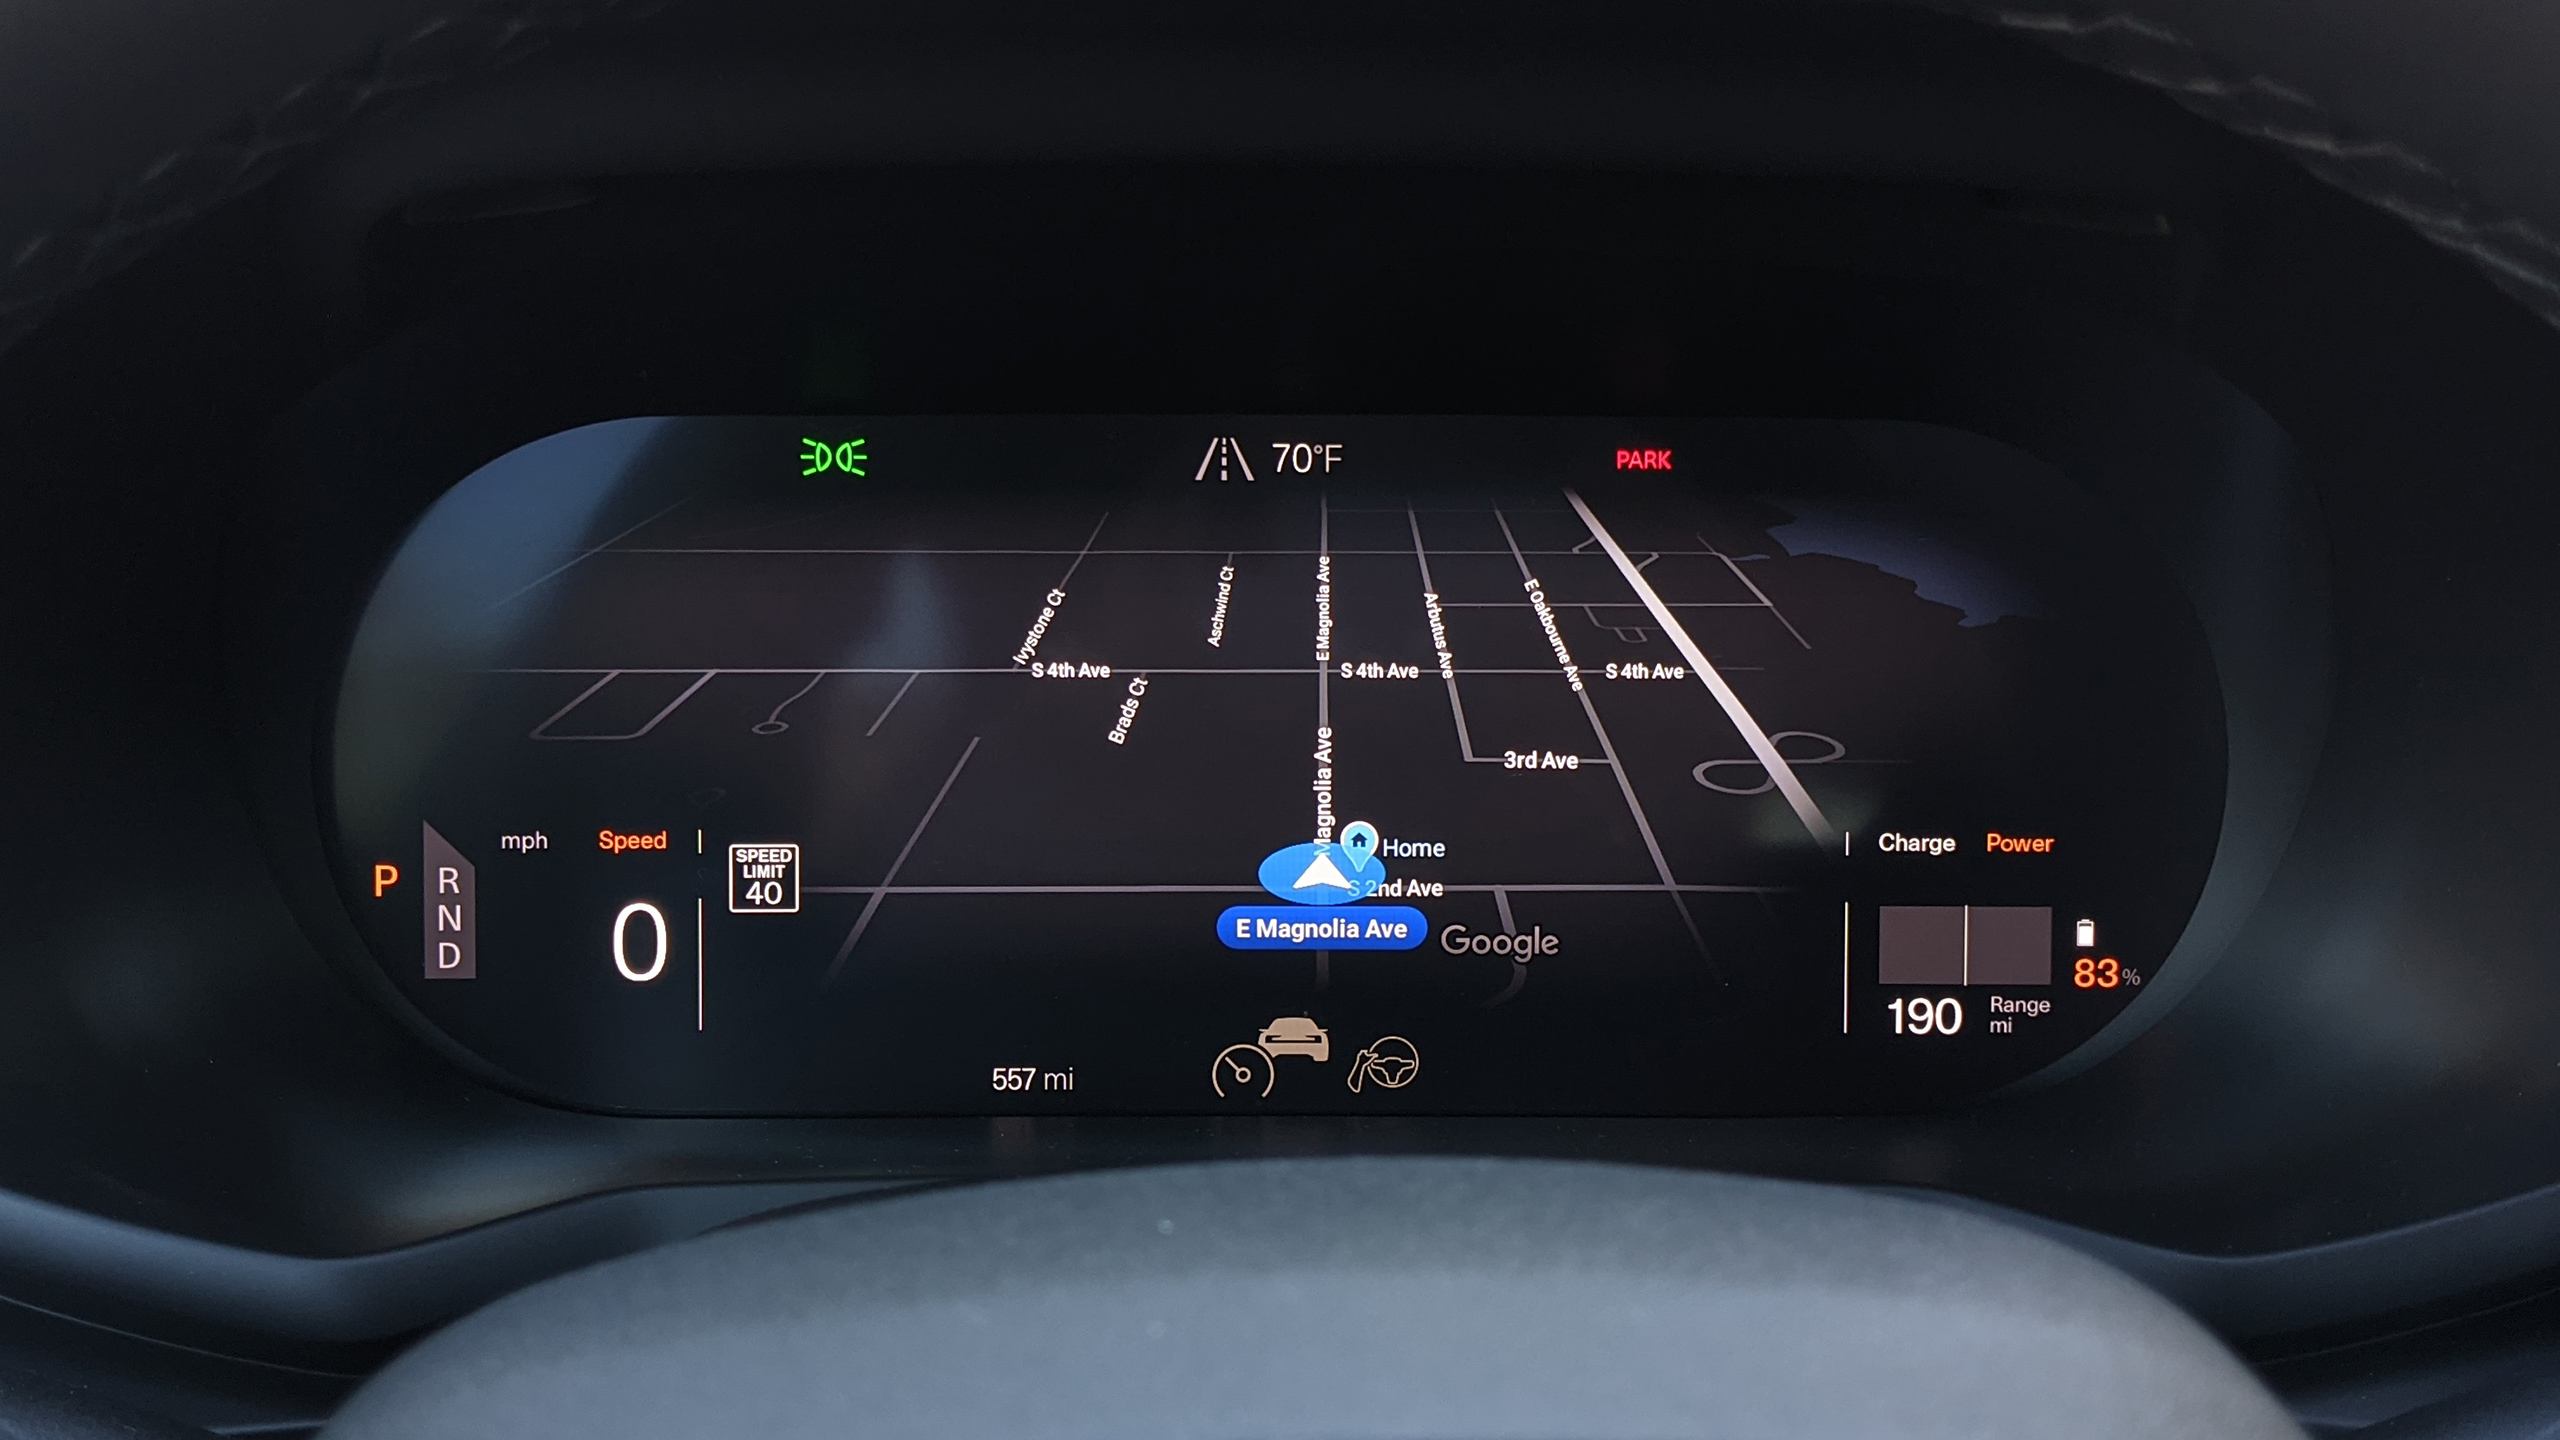 The driver's screen shows the current Google Maps navigation path and basically nothing else.